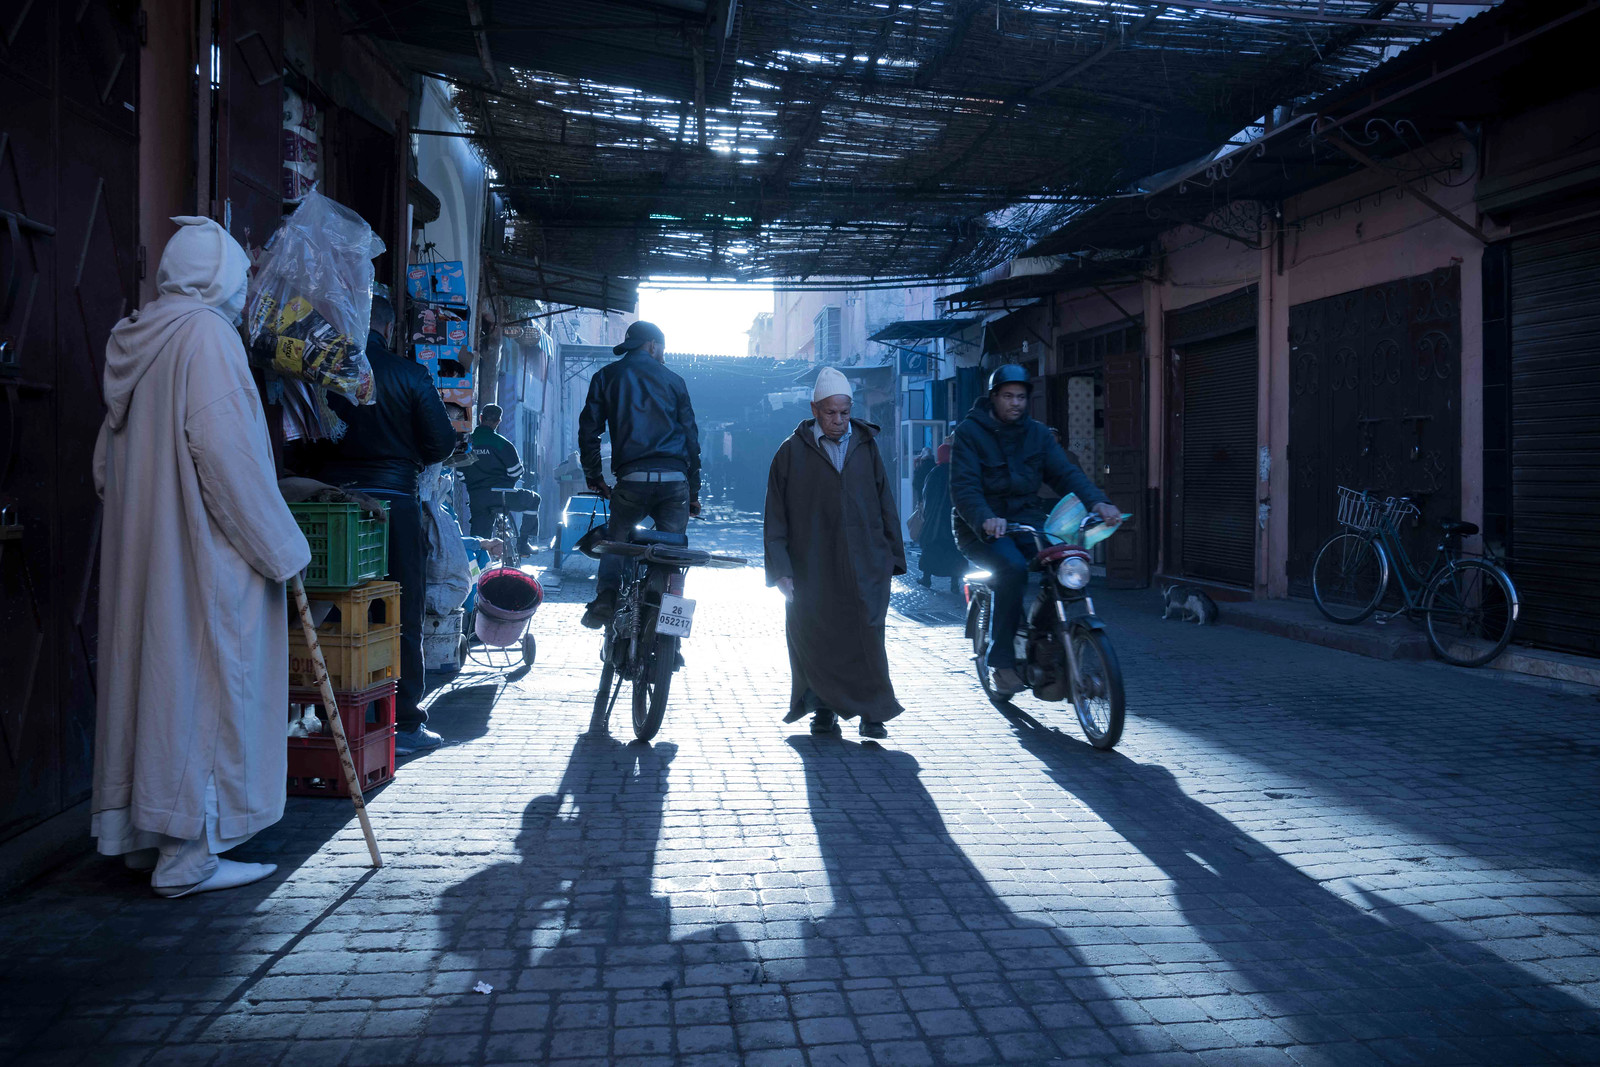 Medinas of Marrakech Morocco - Photography workshop with Intentionally Lost and Kevin Wenning #intentionallylost